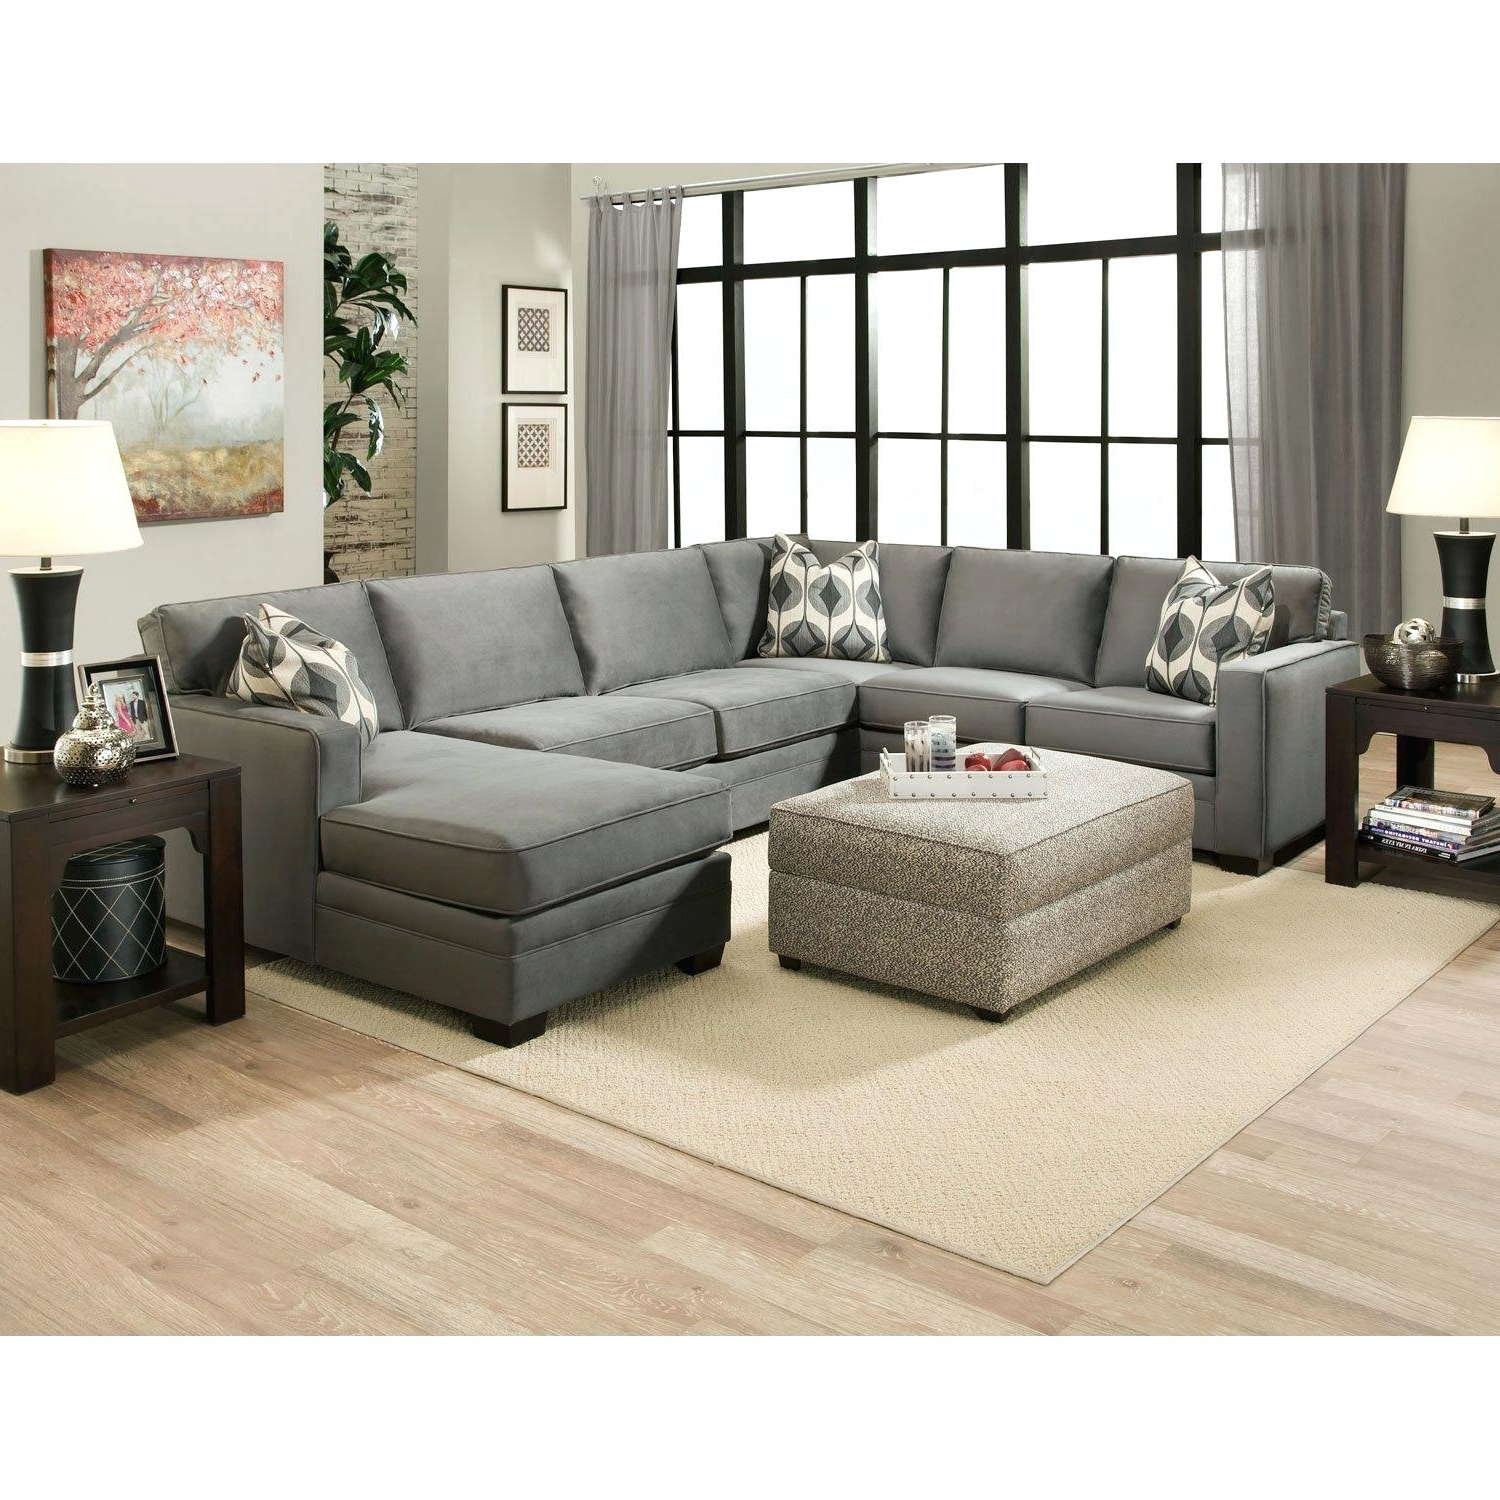 2018 Recliners Chairs & Sofa : 58 Things Flawless Leather Sectional Regarding Sectional Sofas At Edmonton (View 7 of 15)